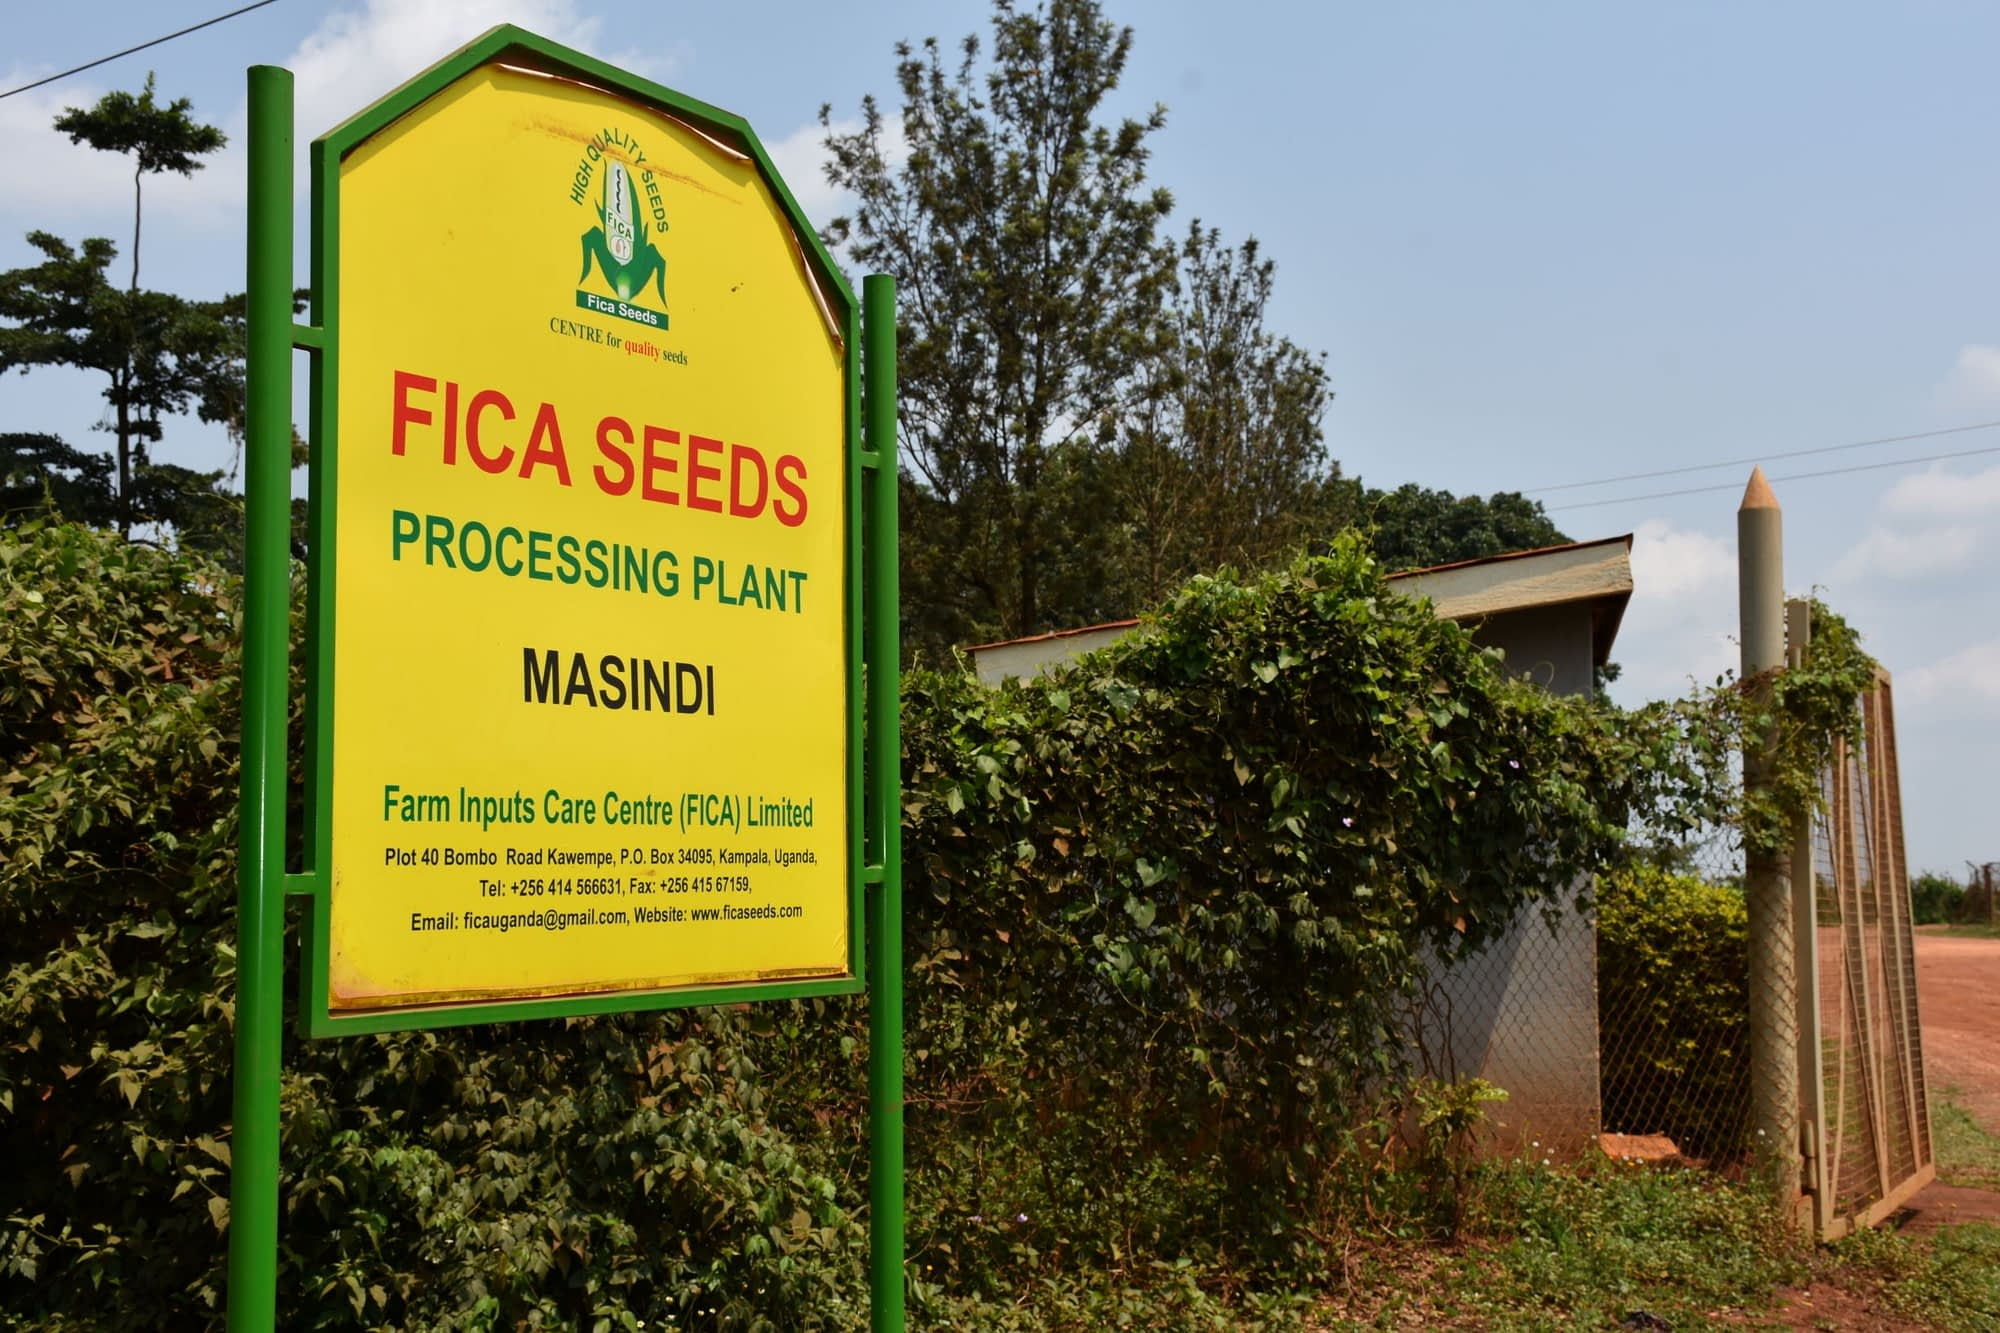 A signpost at the entrance to Farm Inputs Care Centre (FICA) in Masindi, Uganda. (Photo: Joshua Masinde/CIMMYT)